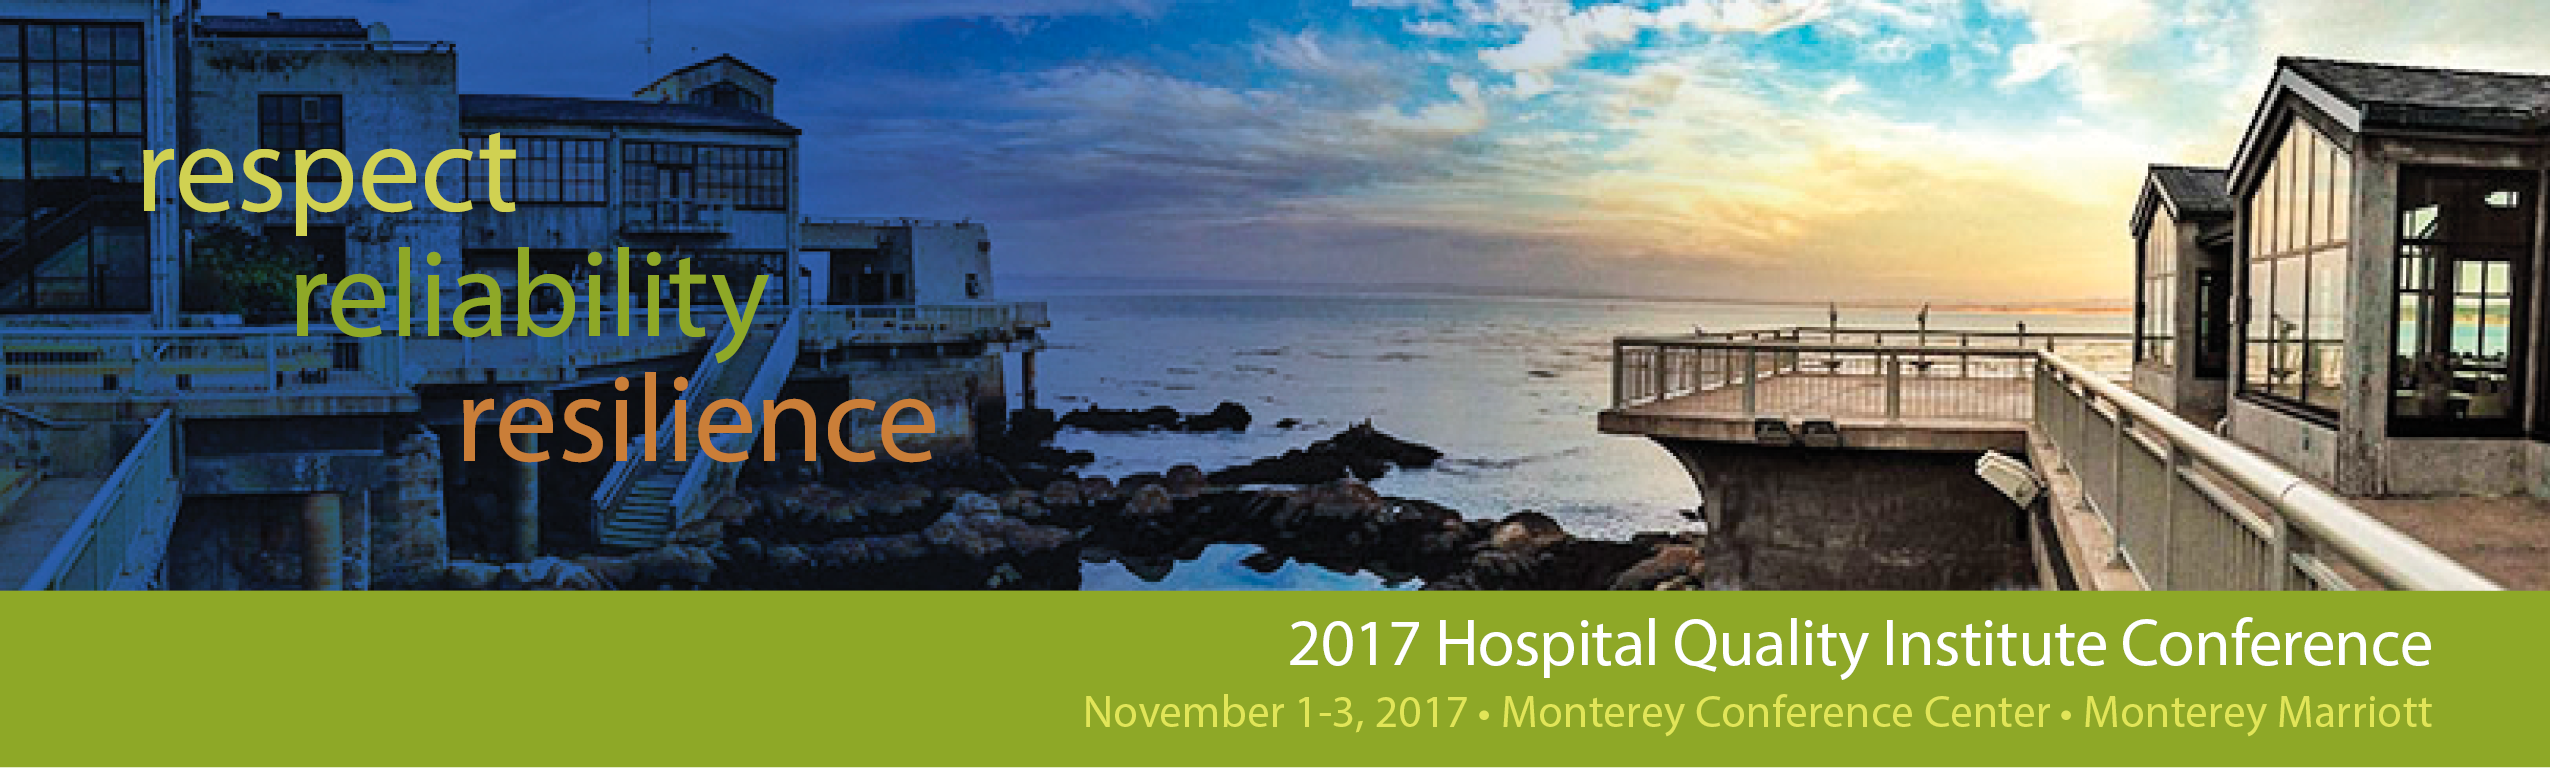 HQI 2017 Annual Conference